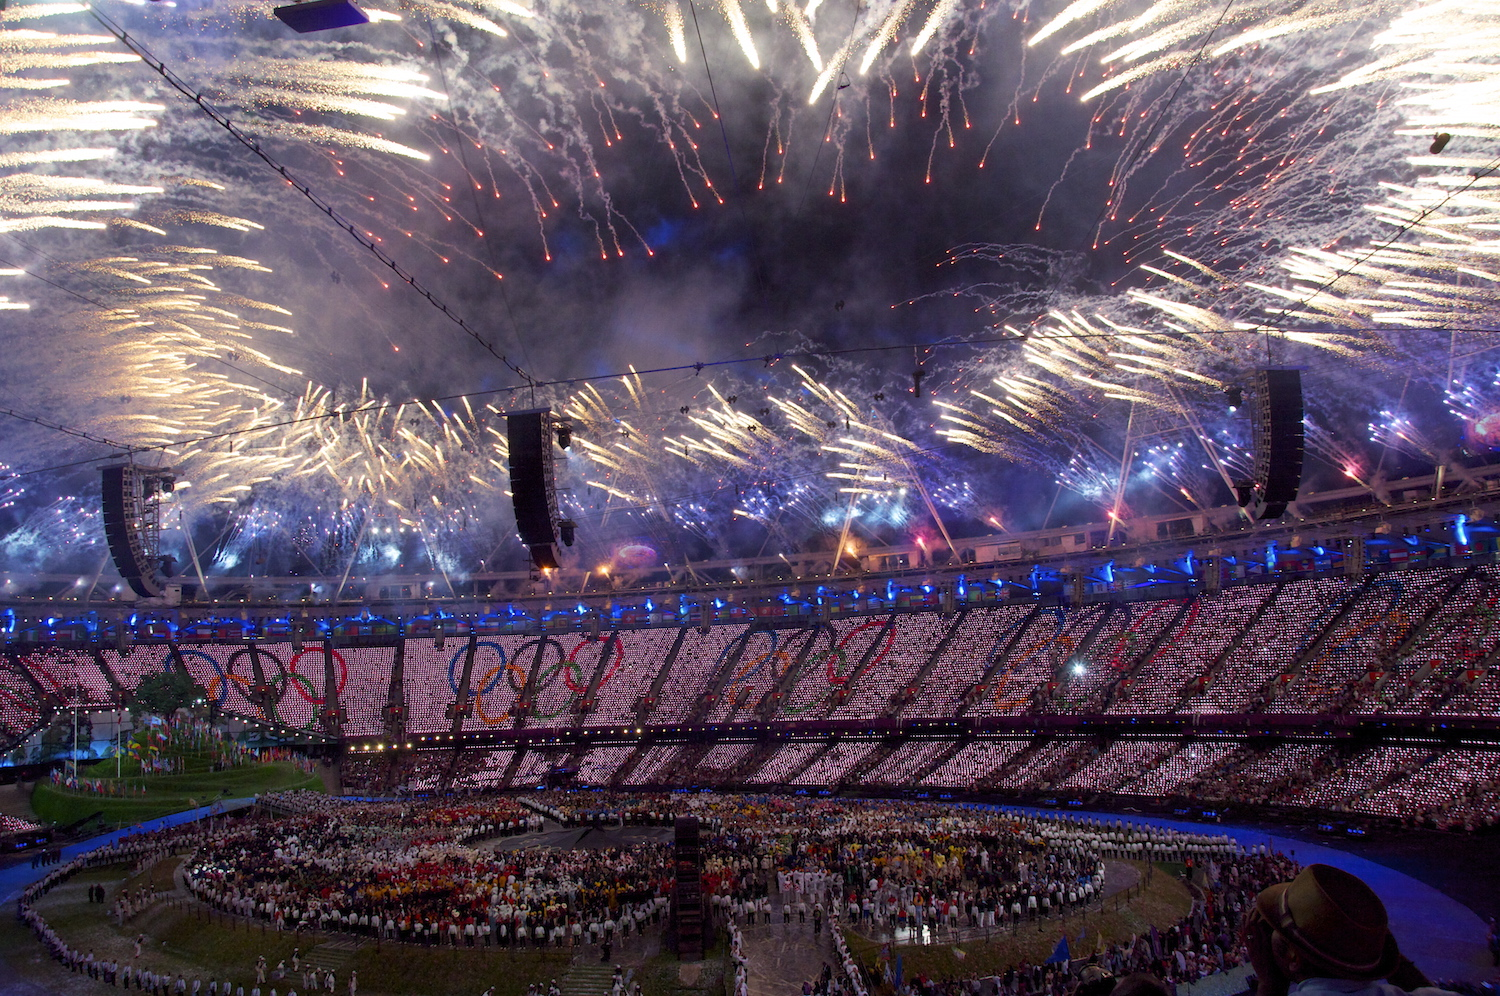 The London 2012 Olympics opening ceremony.